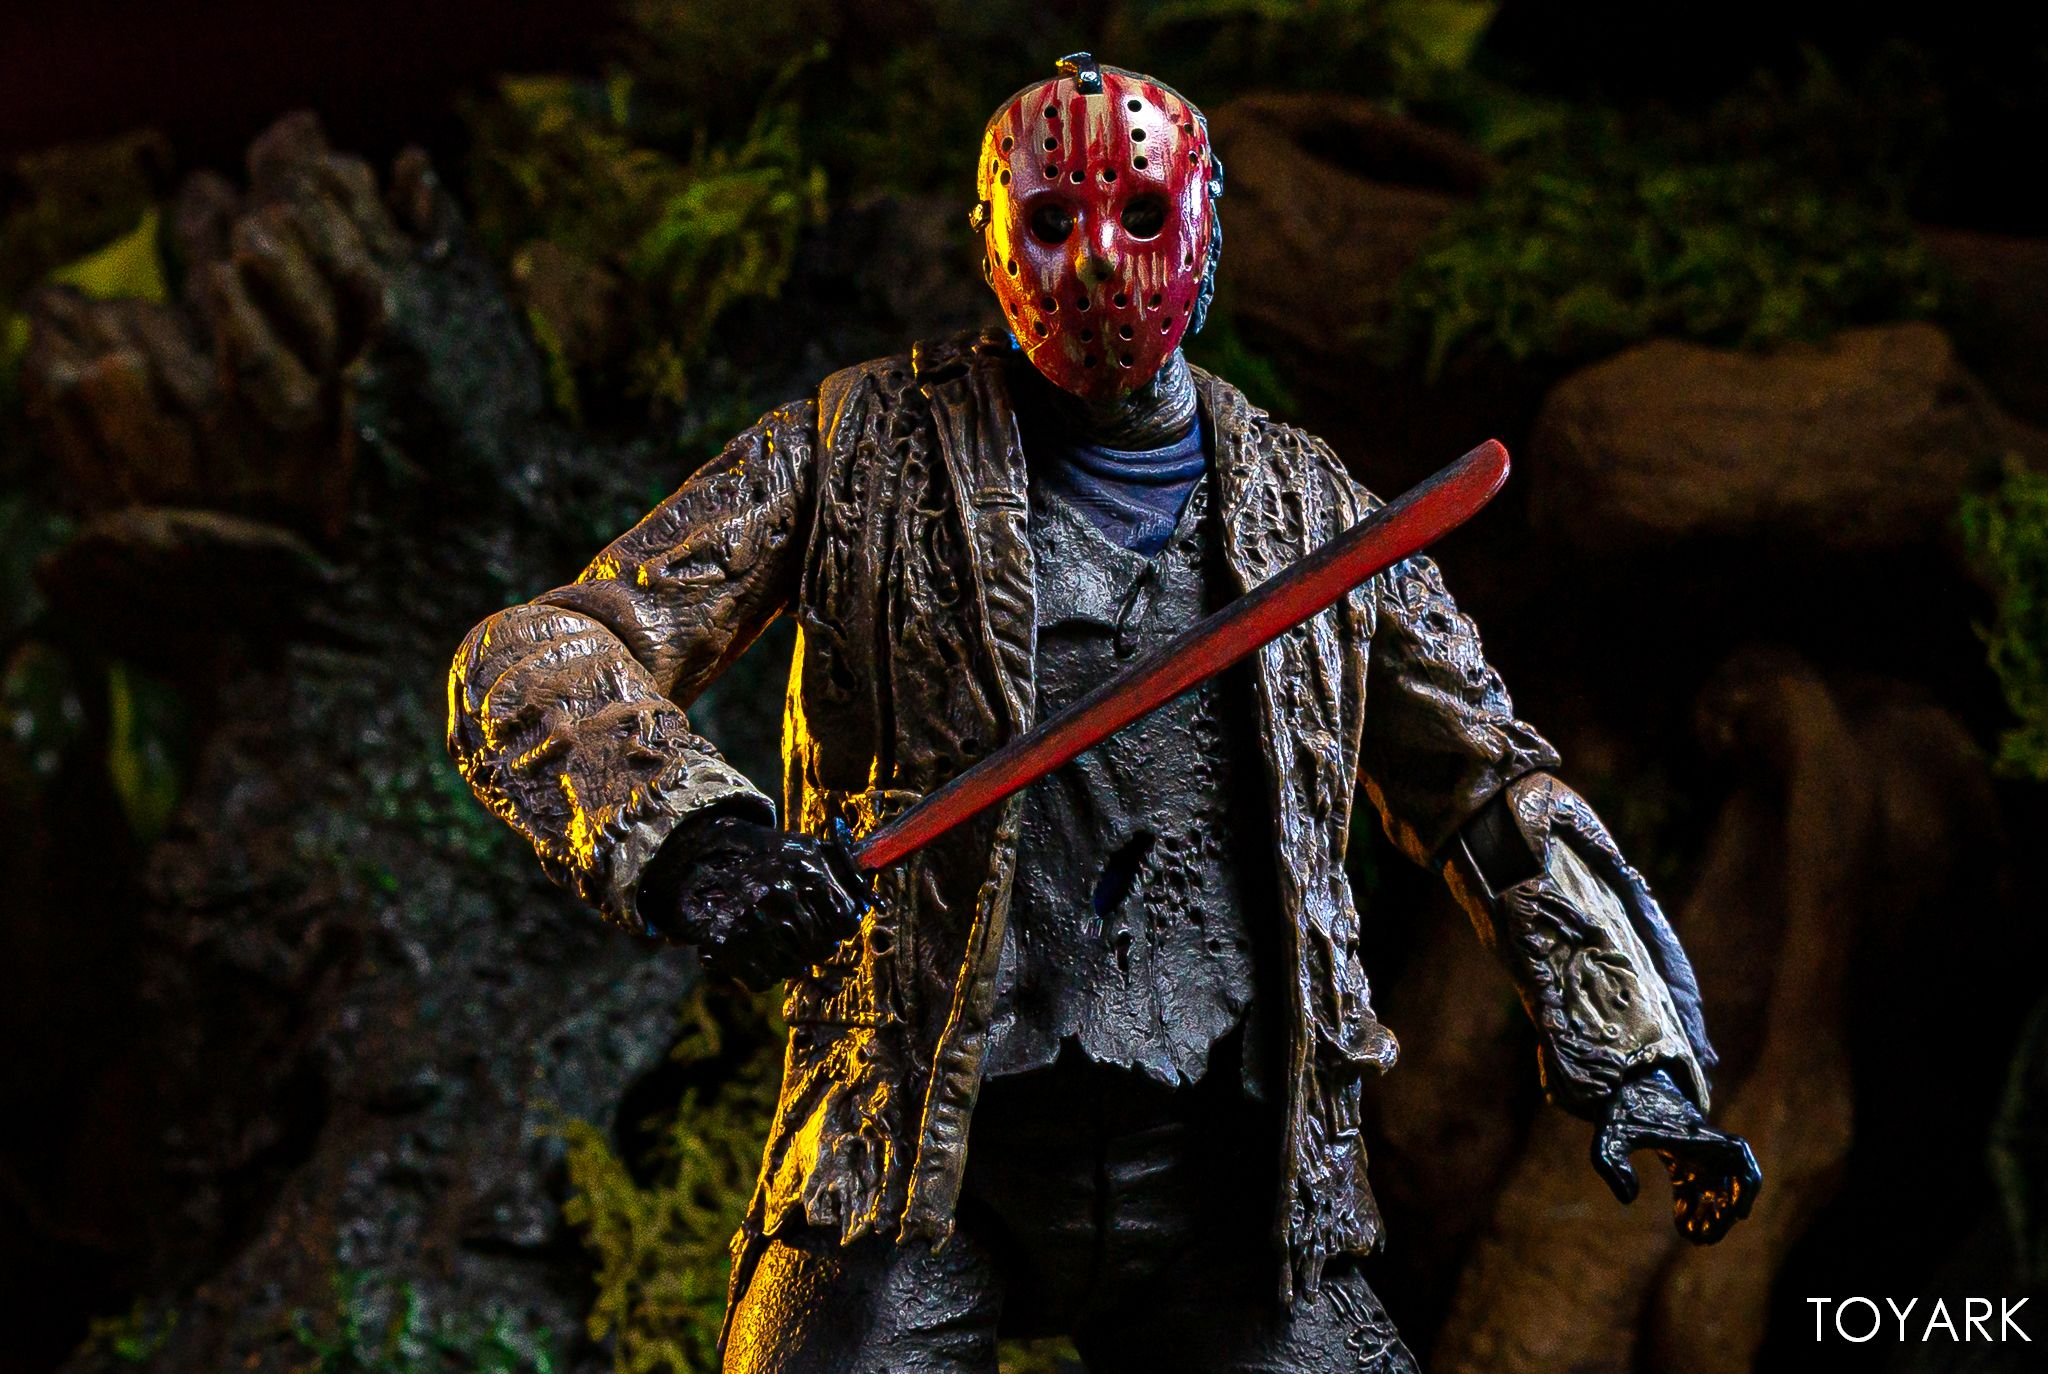 https://news.toyark.com/wp-content/uploads/sites/4/2019/07/FvJ-Jason-Voorhees-NECA-044.jpg